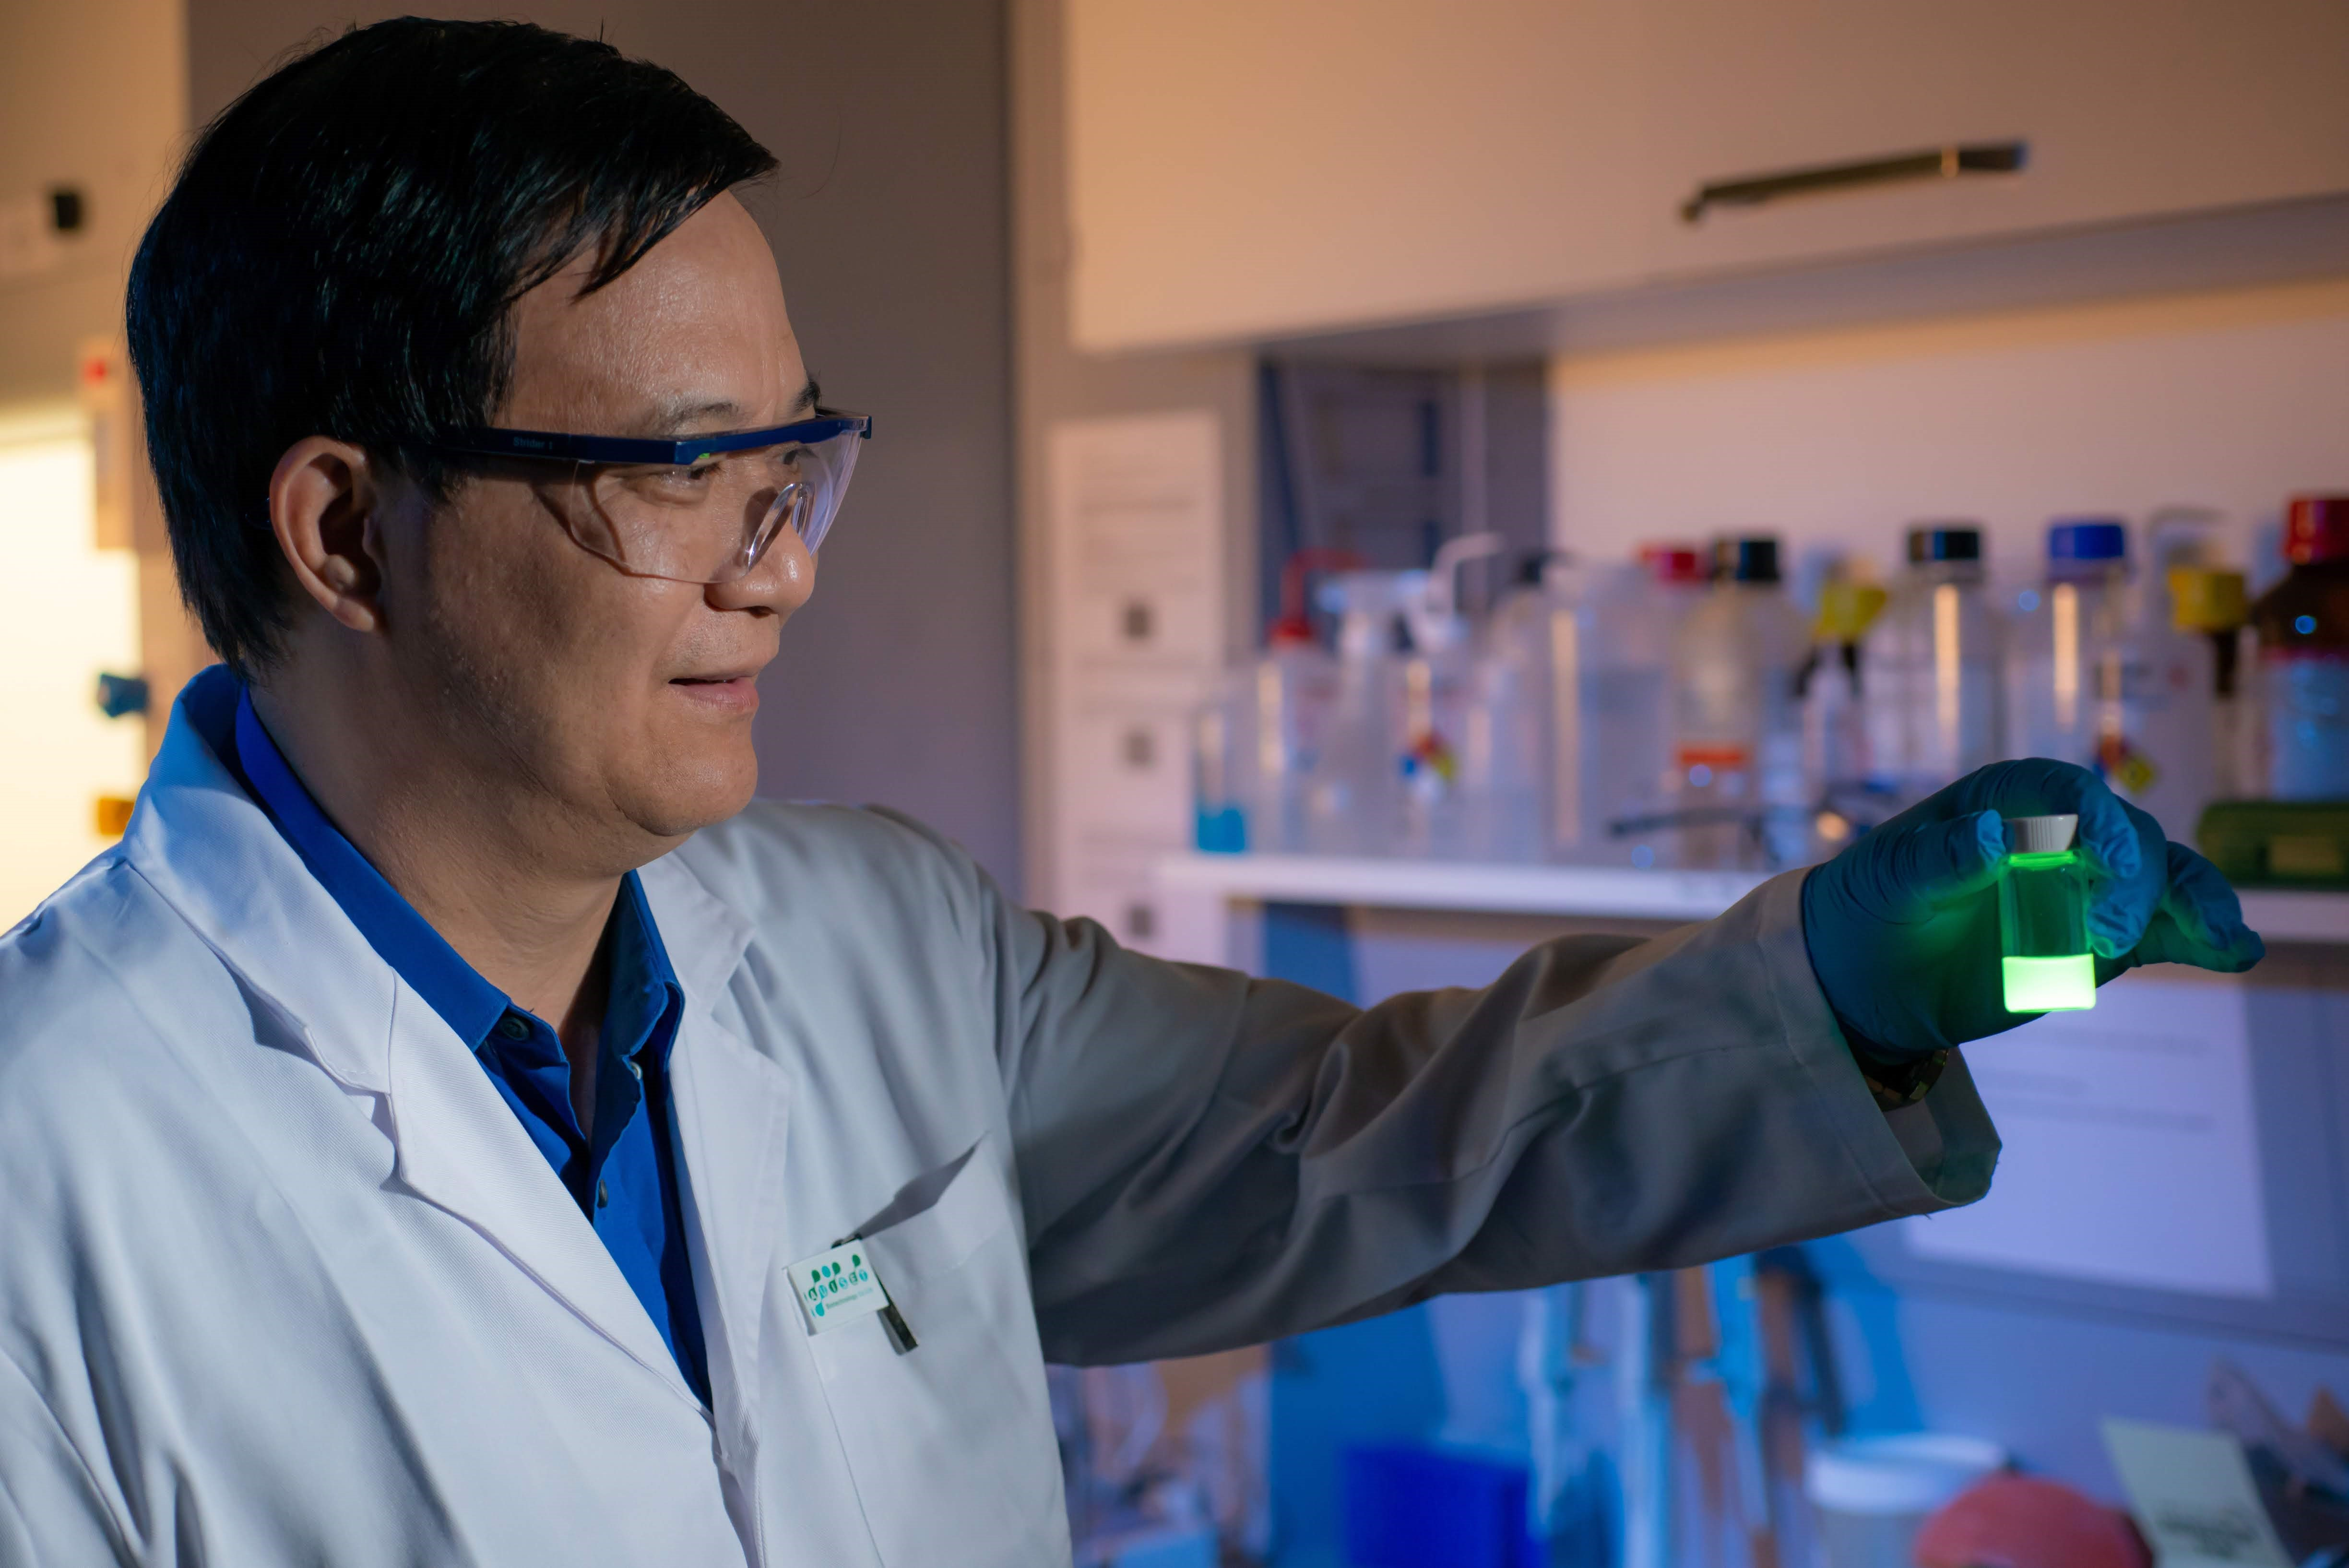 Since 2001, Prof. Tang has been researching on the unique photophysical phenomenon of AIE, leading to the development of more than 200 high-performance fluorescent materials with wide-ranging applications.